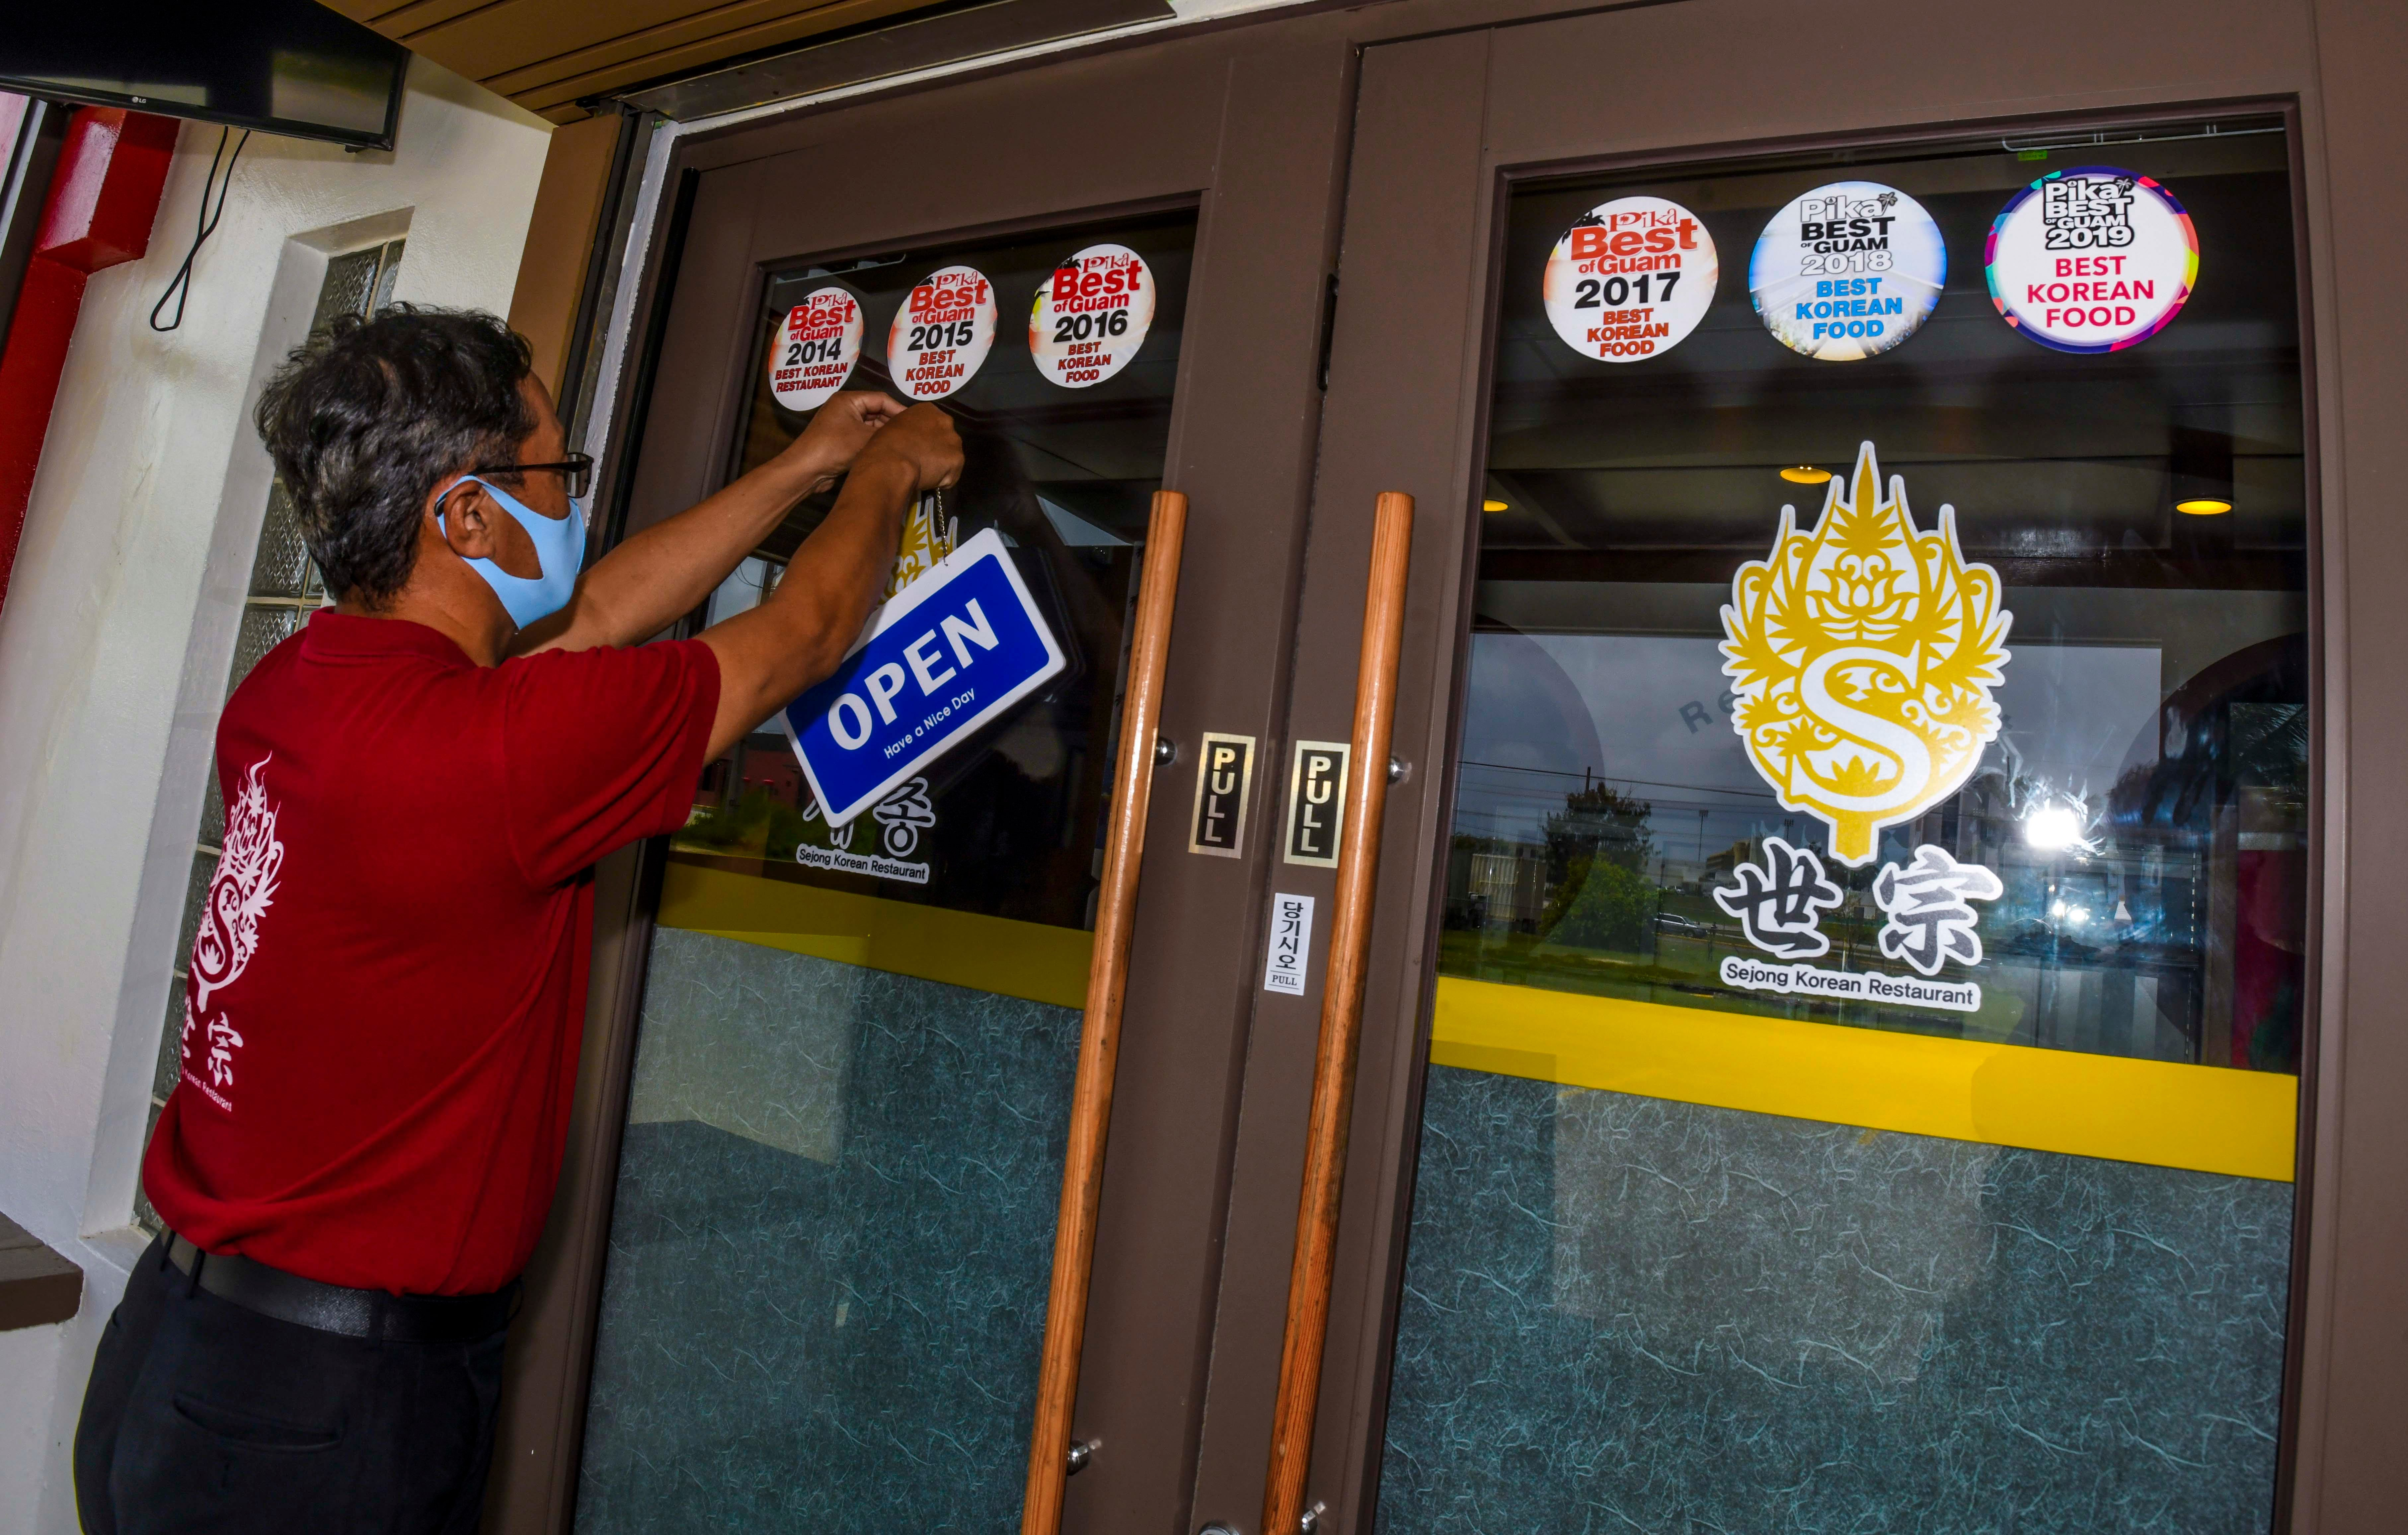 General Manager Alex Baik hangs an open sign at the entrance of the Sejong Korean Restaurant in Tamuning in this May 5 file photo as the restaurant reopened to serve lunch and dinner take-out orders. The reopening of restaurant dine-in services will be postponedafter 11 COVID-19 cases were confirmed Wednesday night.